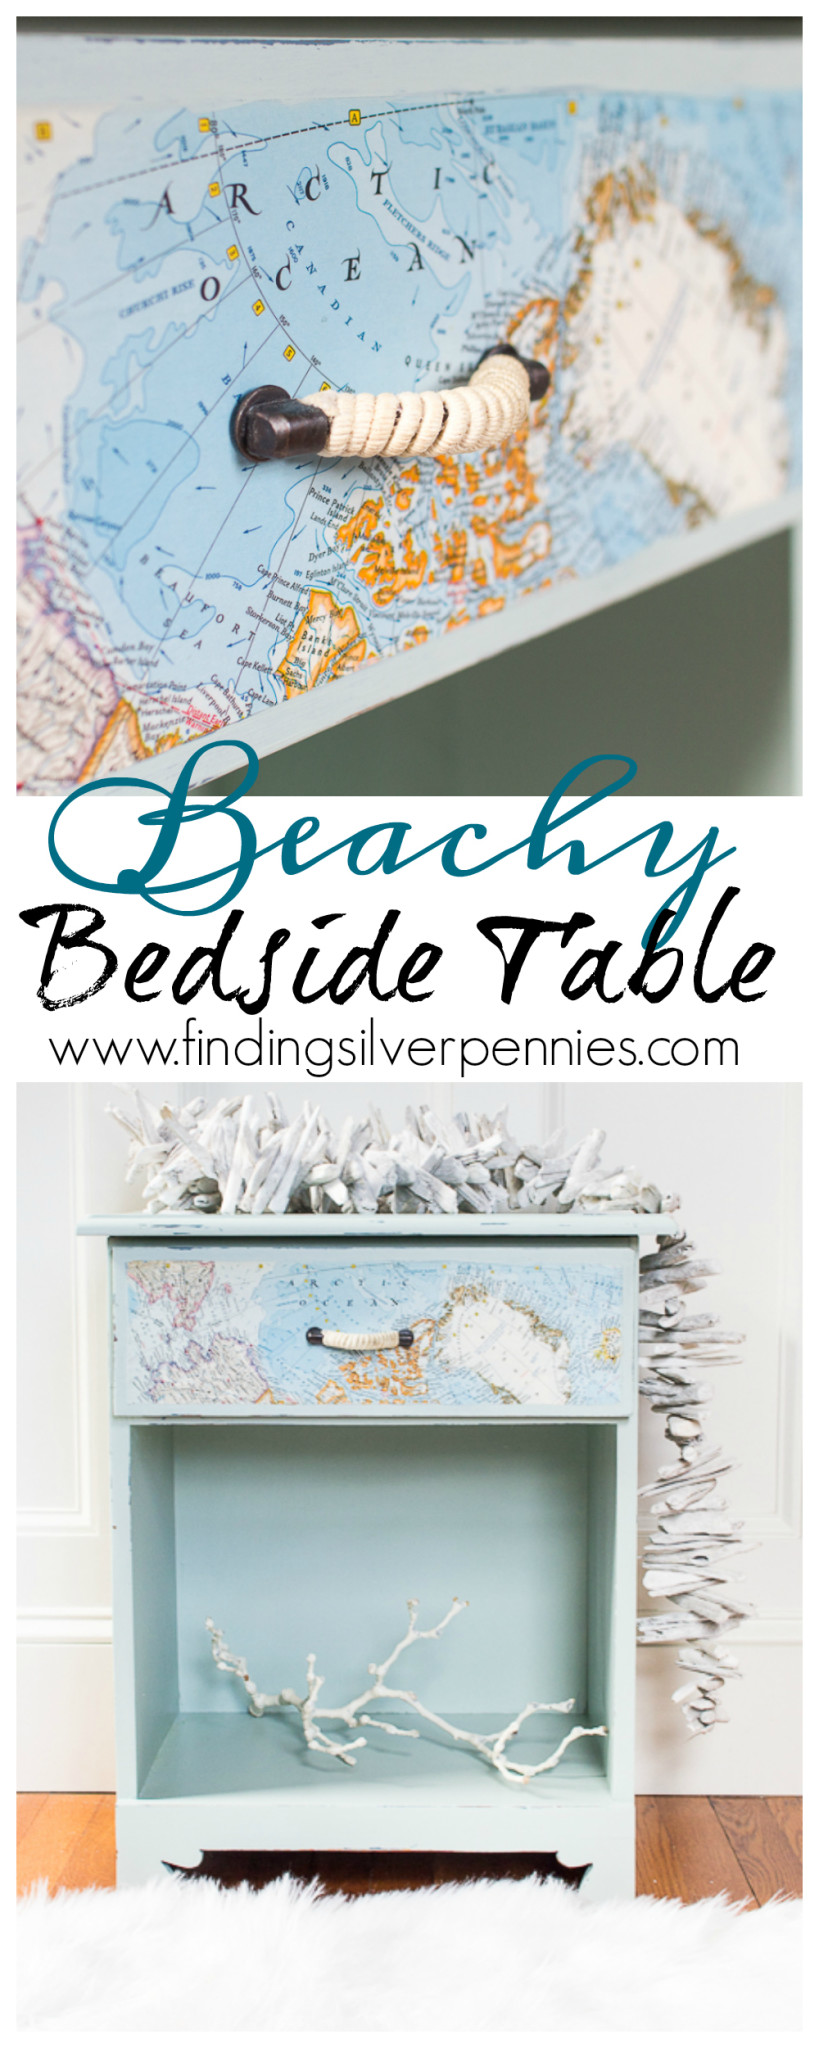 A Beachy Bedside Table Makeover by Finding Silver Pennies